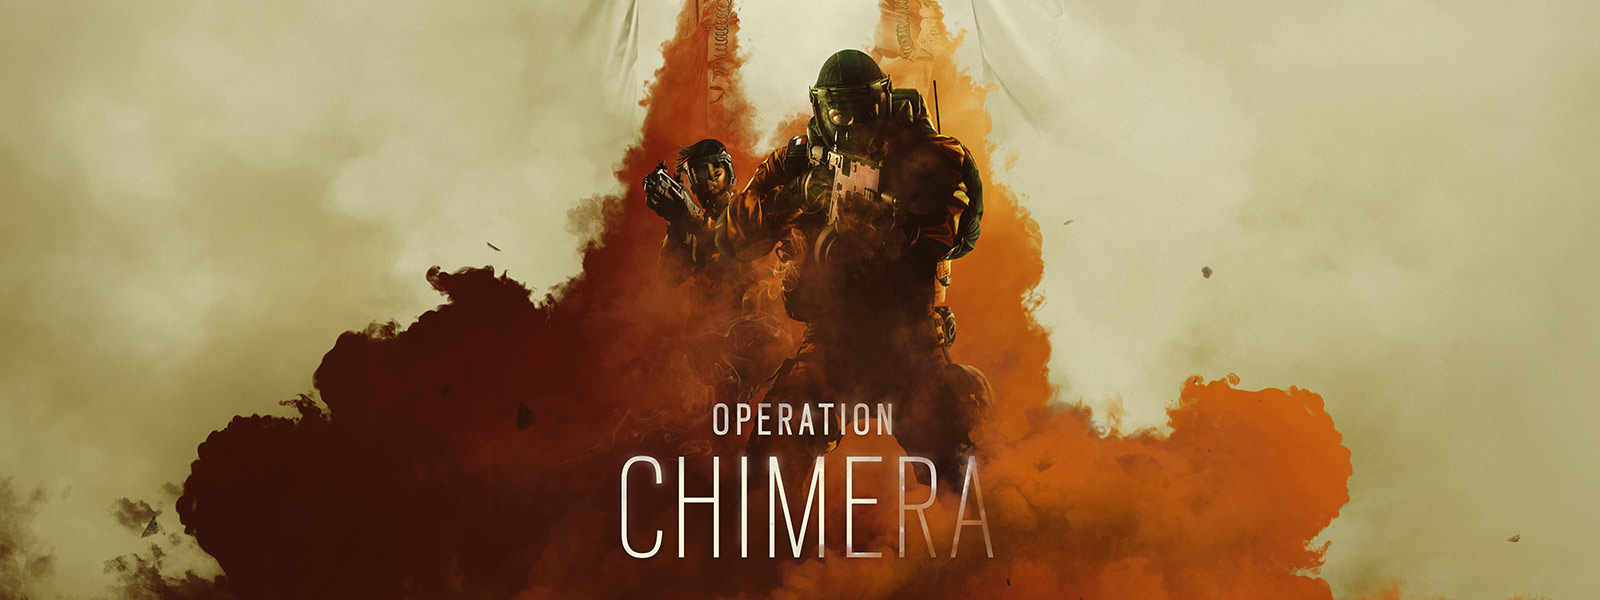 Operation Chimera: two operators wearing gas masks walk through orange gas